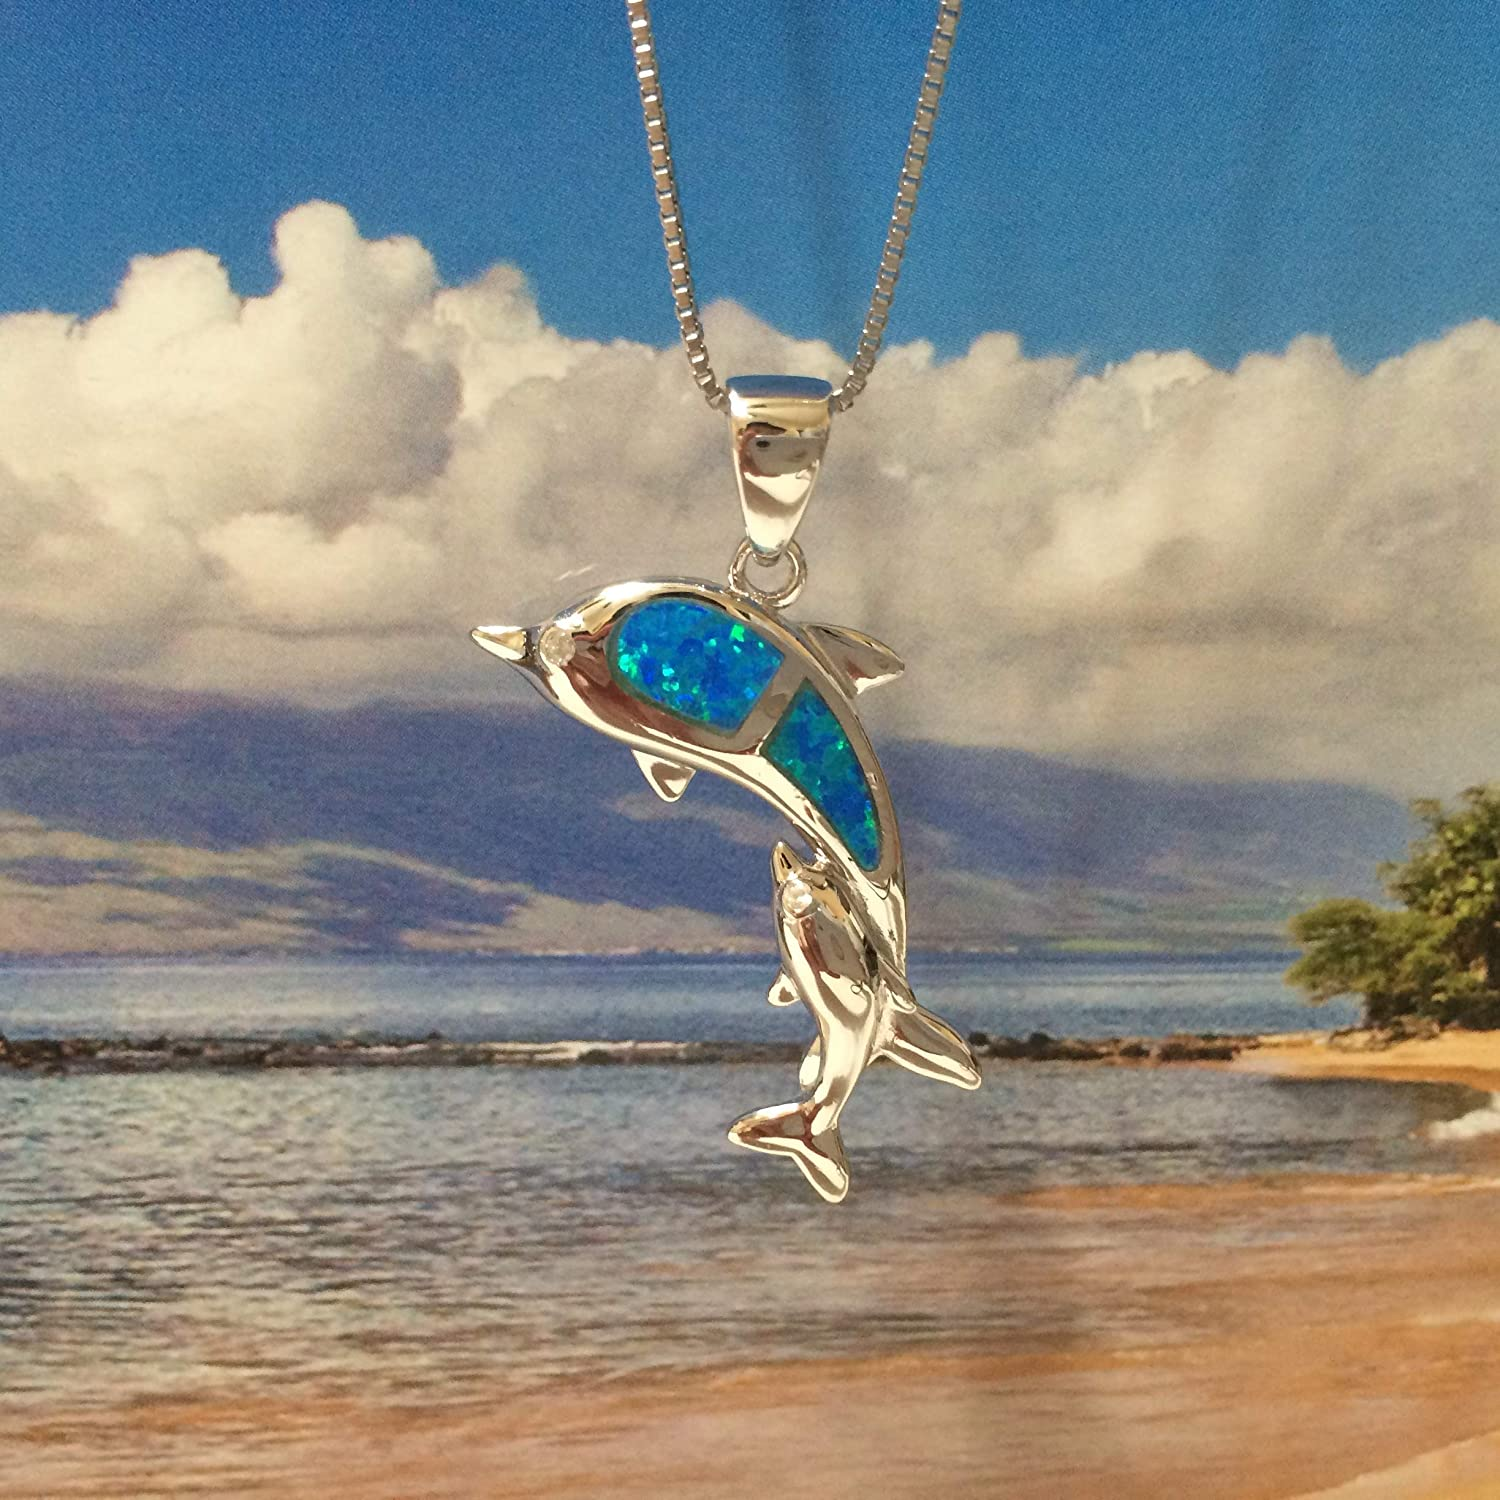 Sterling Silver Hawaiian Dolphin Pendant Necklace with Synthetic Blue Opal with 18 Silver Chain A6150